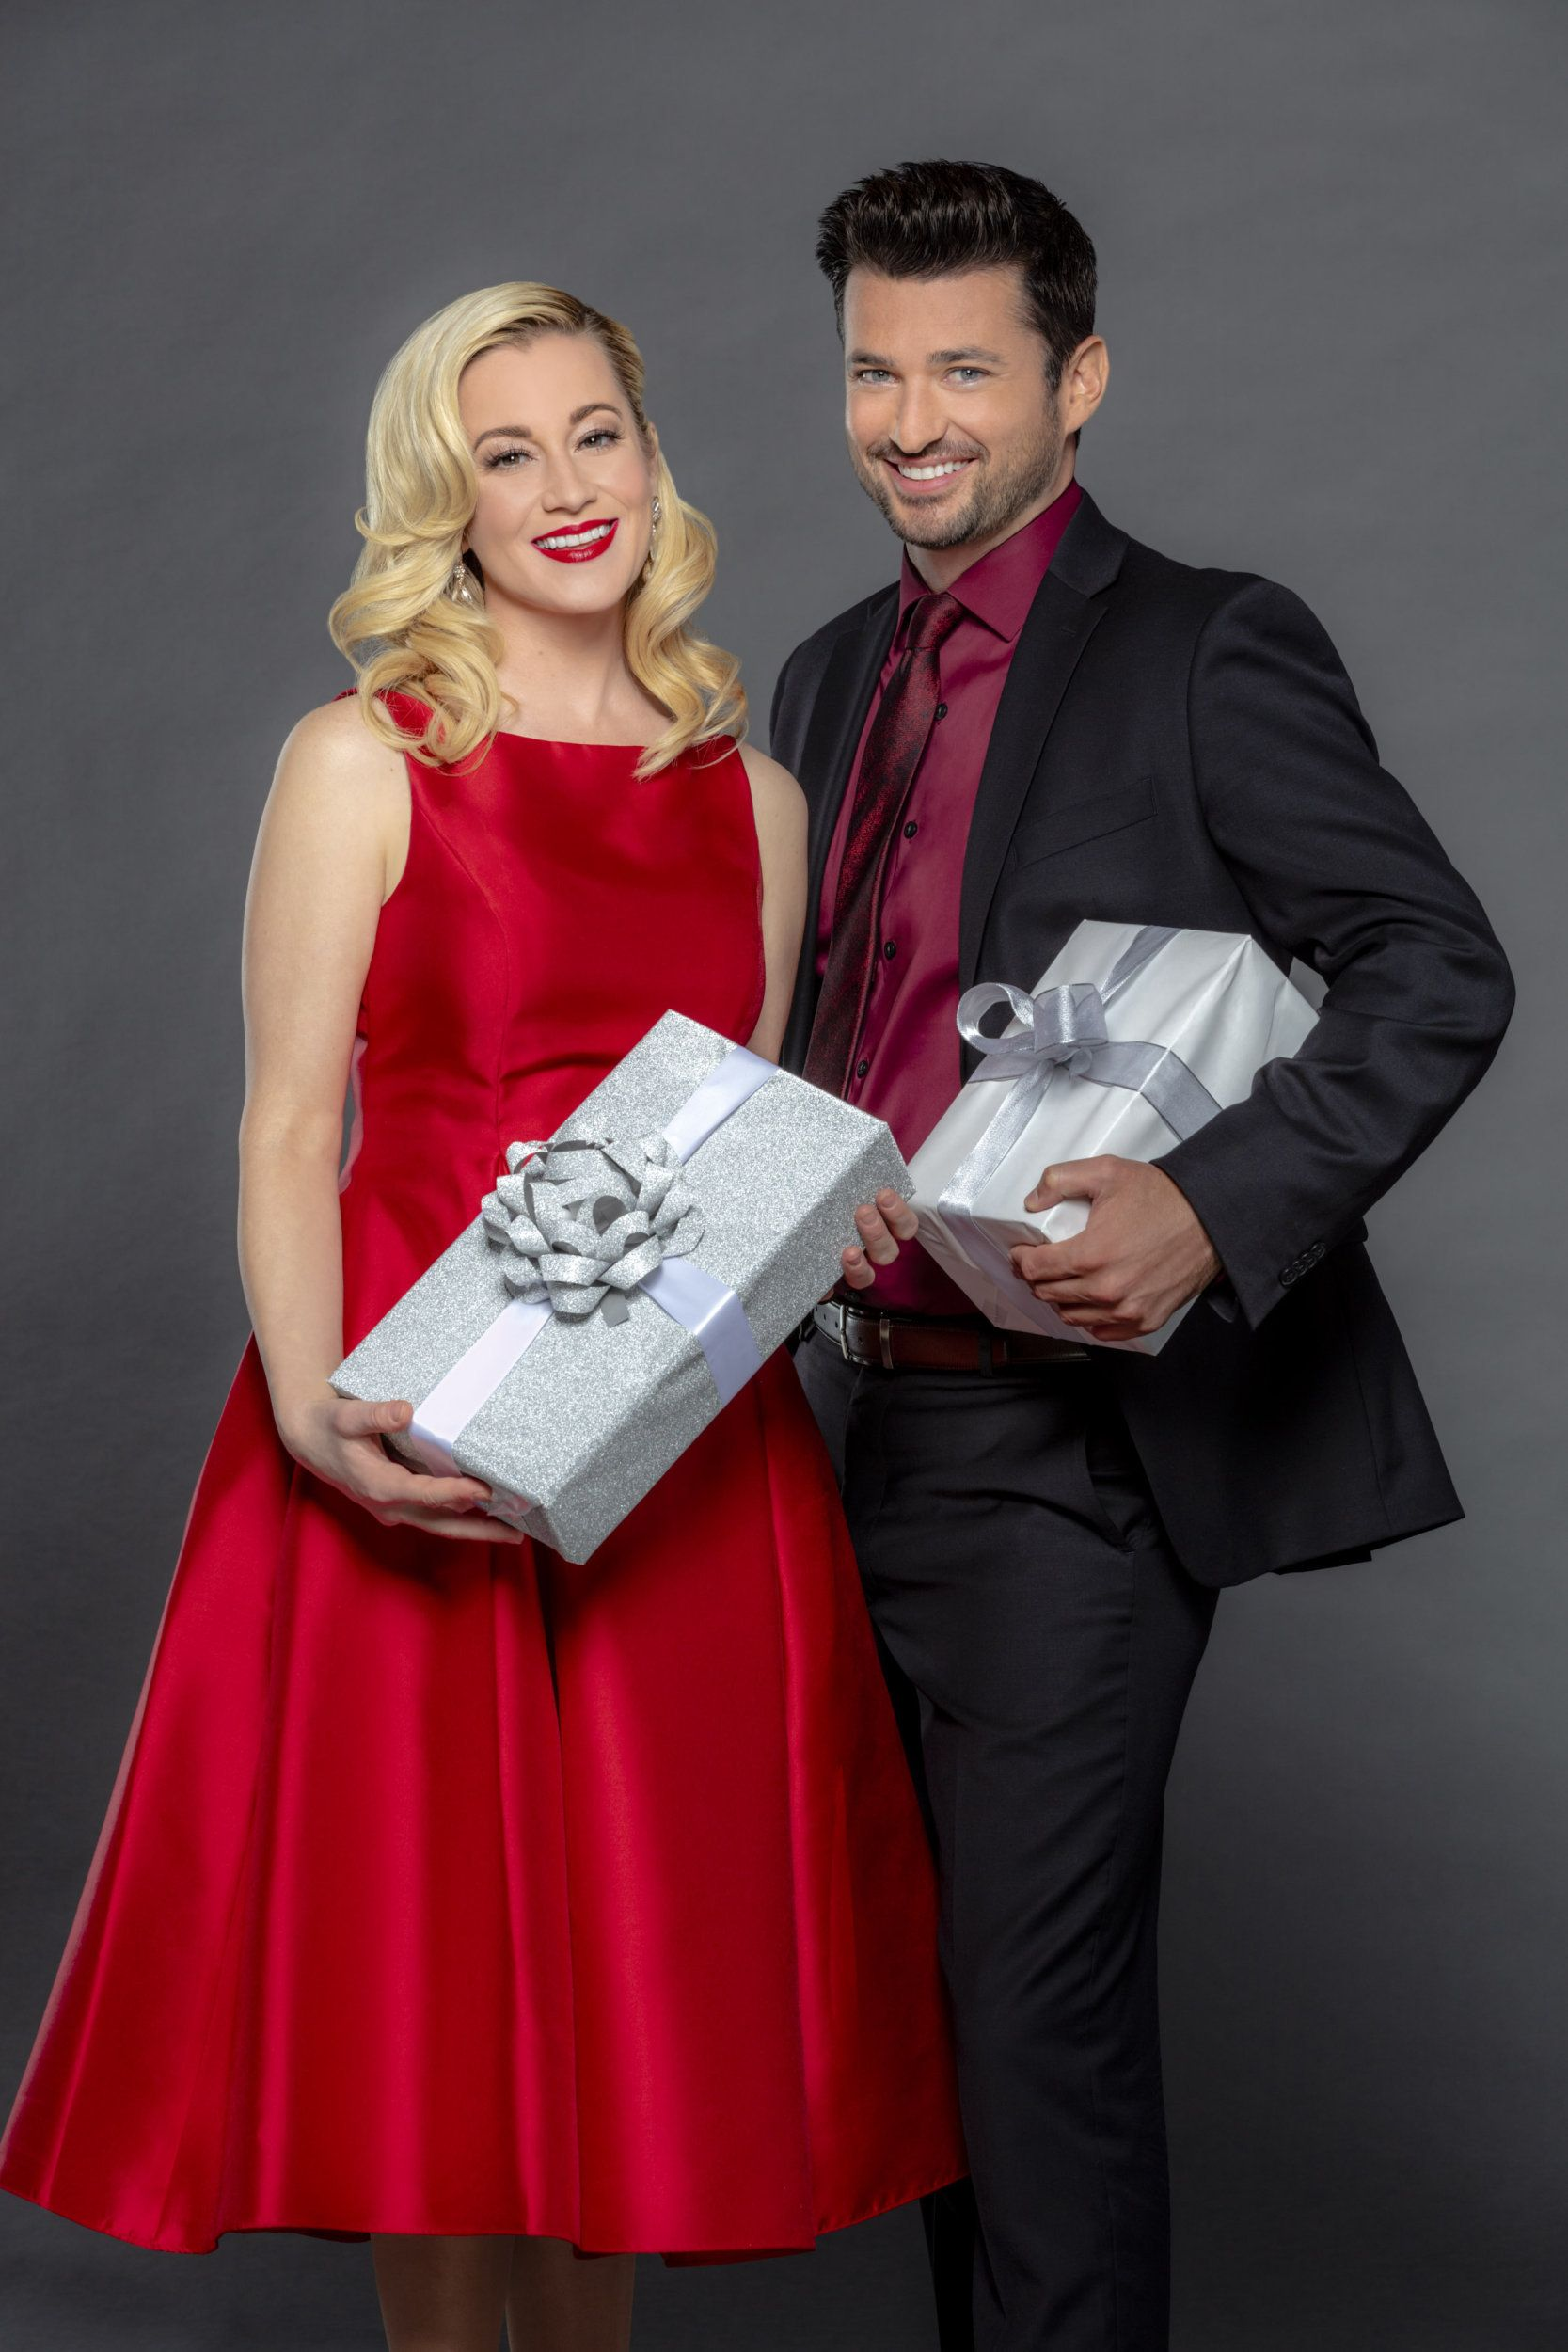 Christmas At Graceland Hallmark.Find Out More About The Hallmark Channel Original Movie